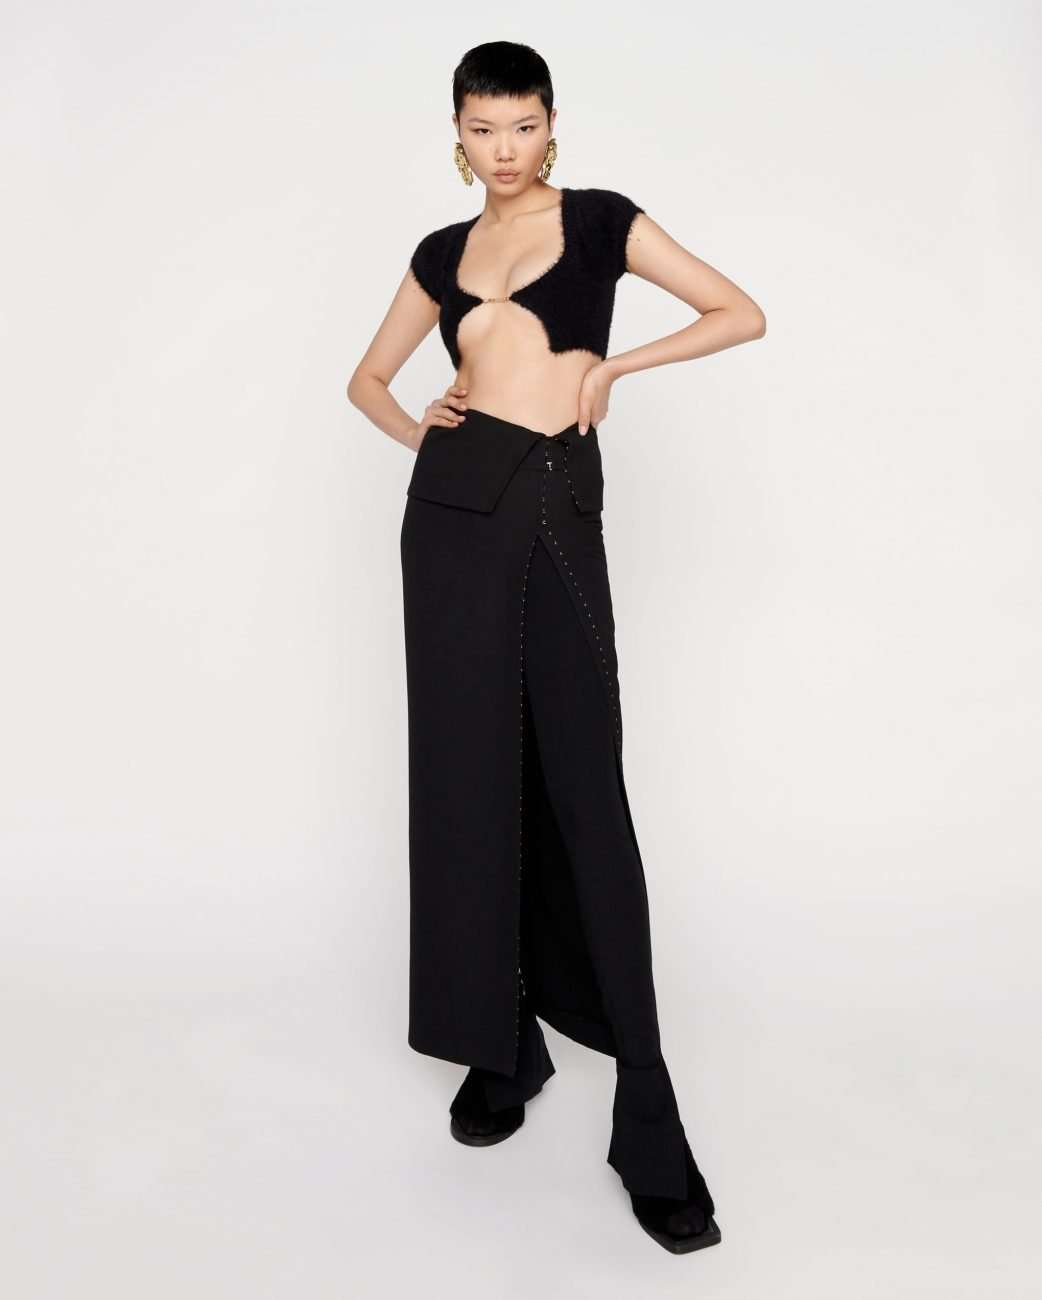 Cropped cardigan by Jacquemus. credit Jacquemus